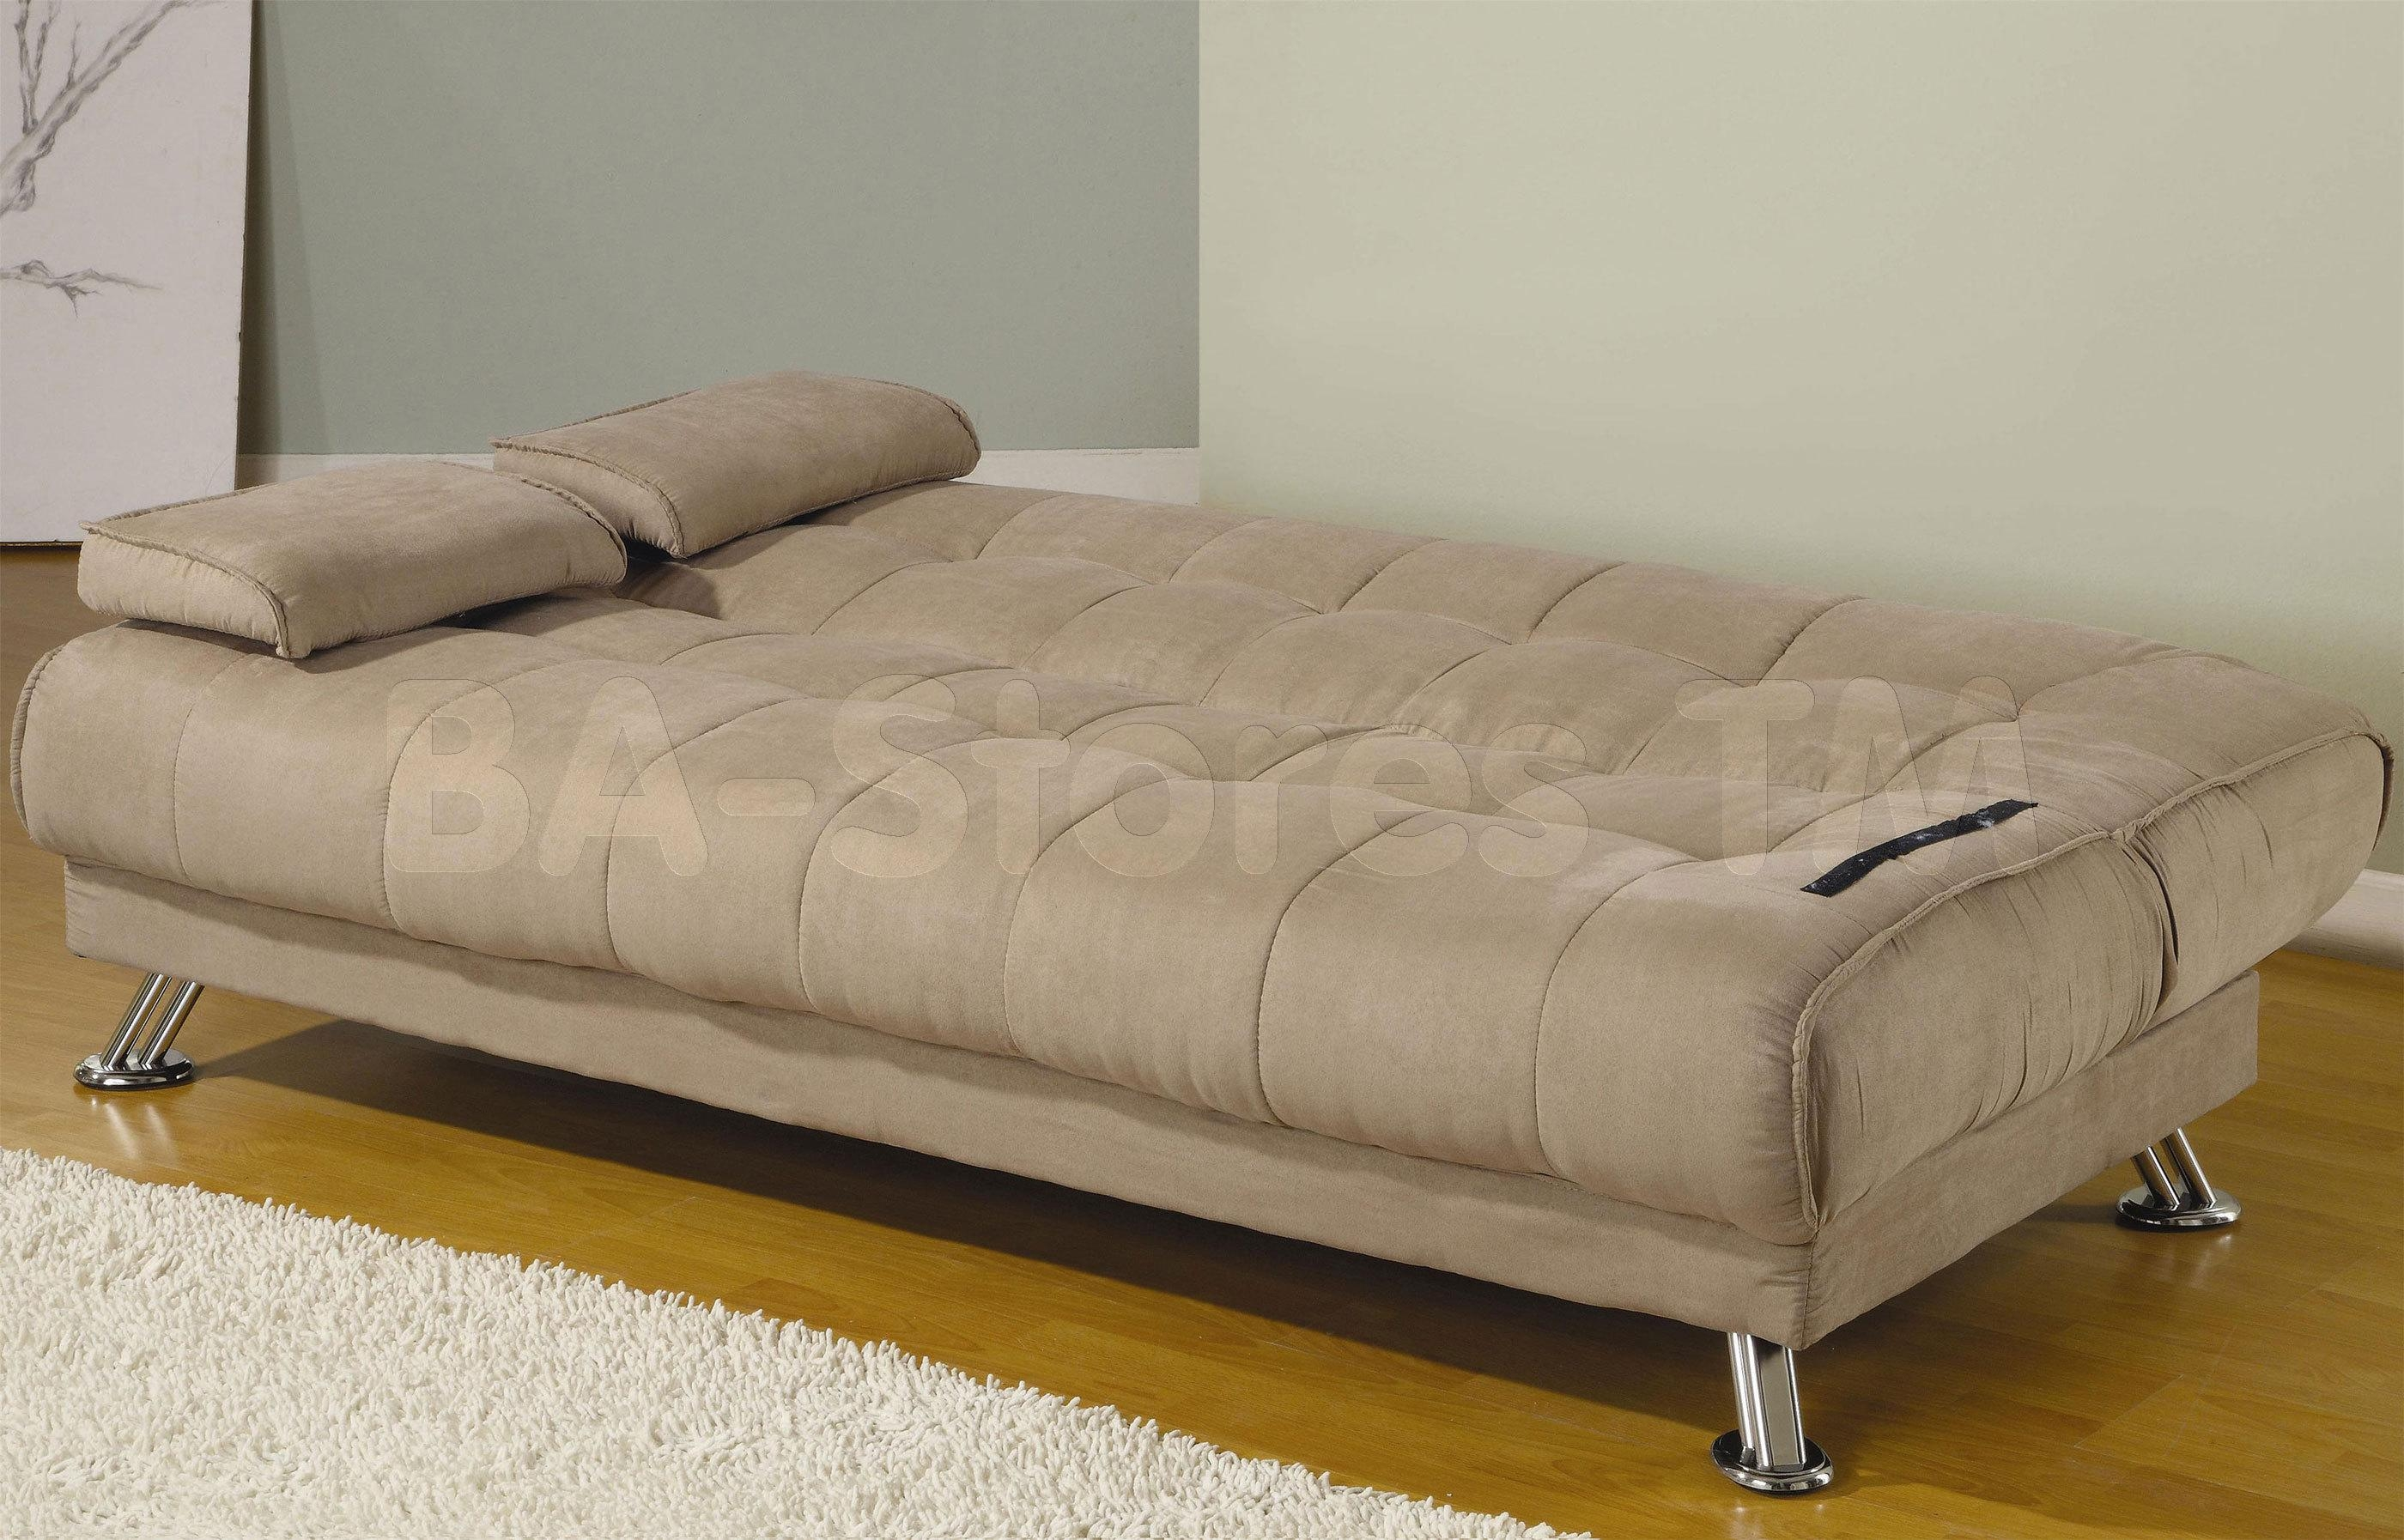 Leather Sofa Bed Full Size | Tehranmix Decoration In Full Size Sofa Beds (Image 6 of 20)